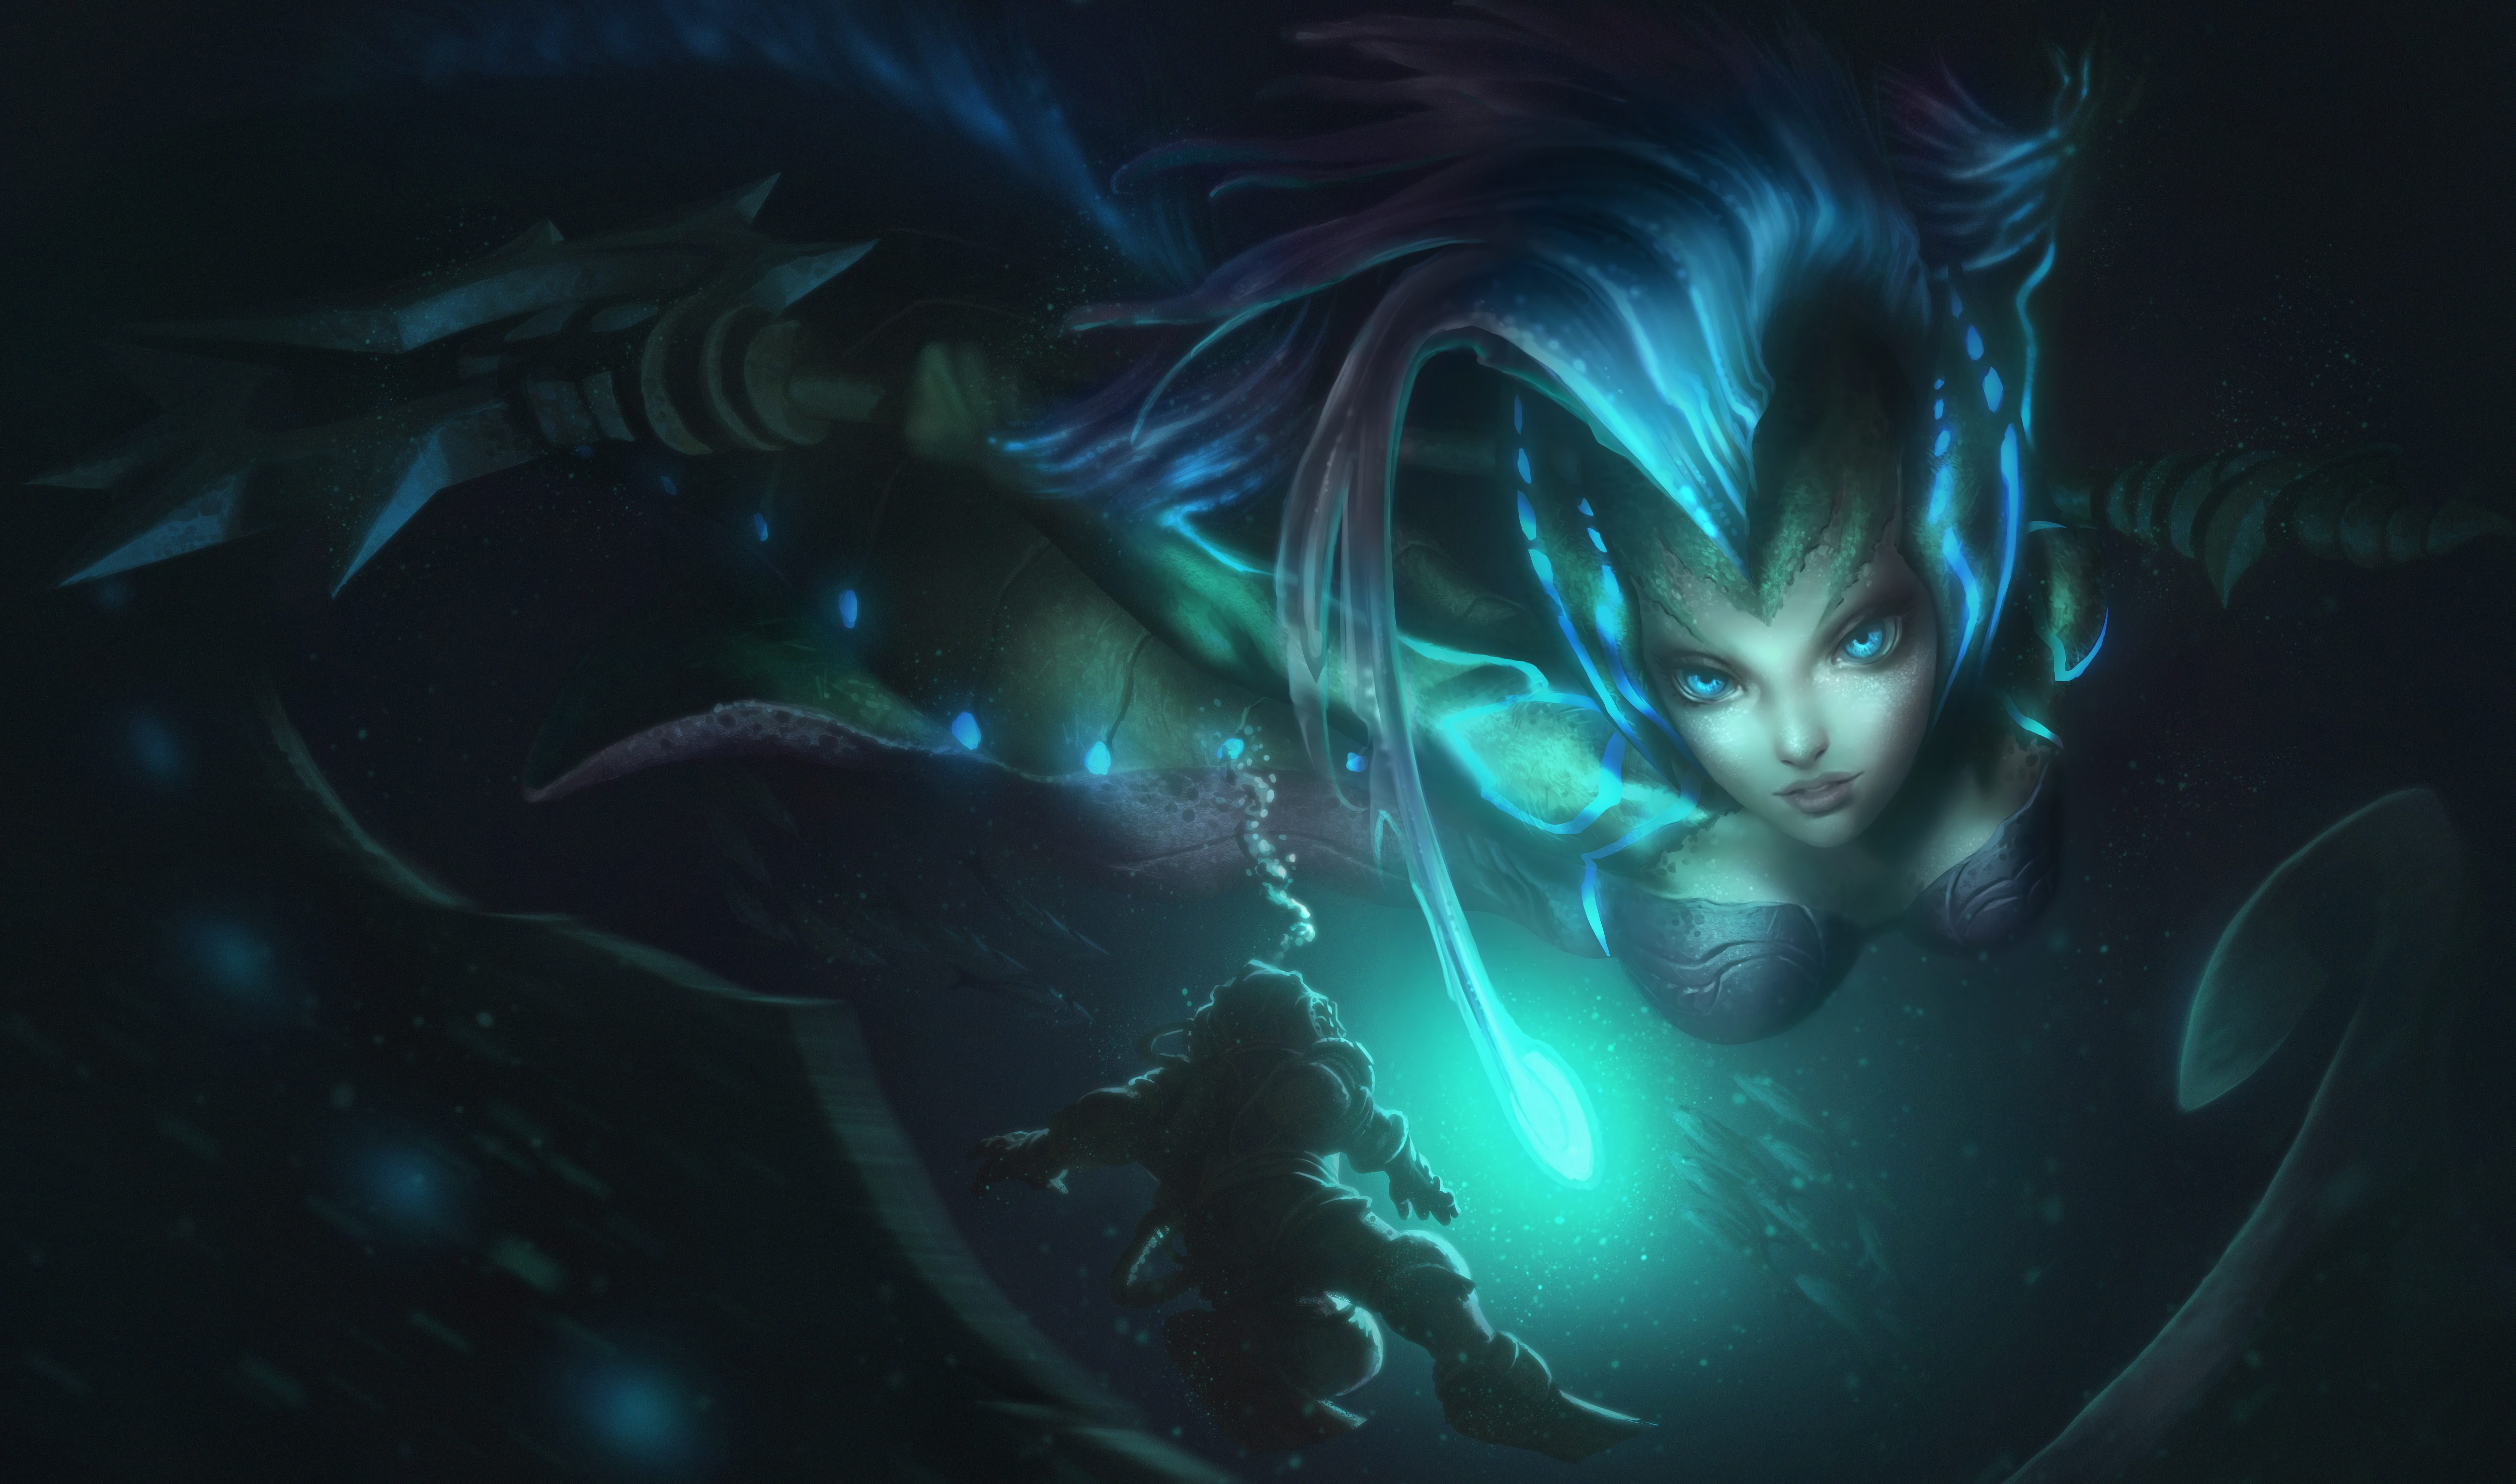 Deep Sea Nami Splash Art HD 4k Wallpaper Background Official Art Artwork League of Legends lol